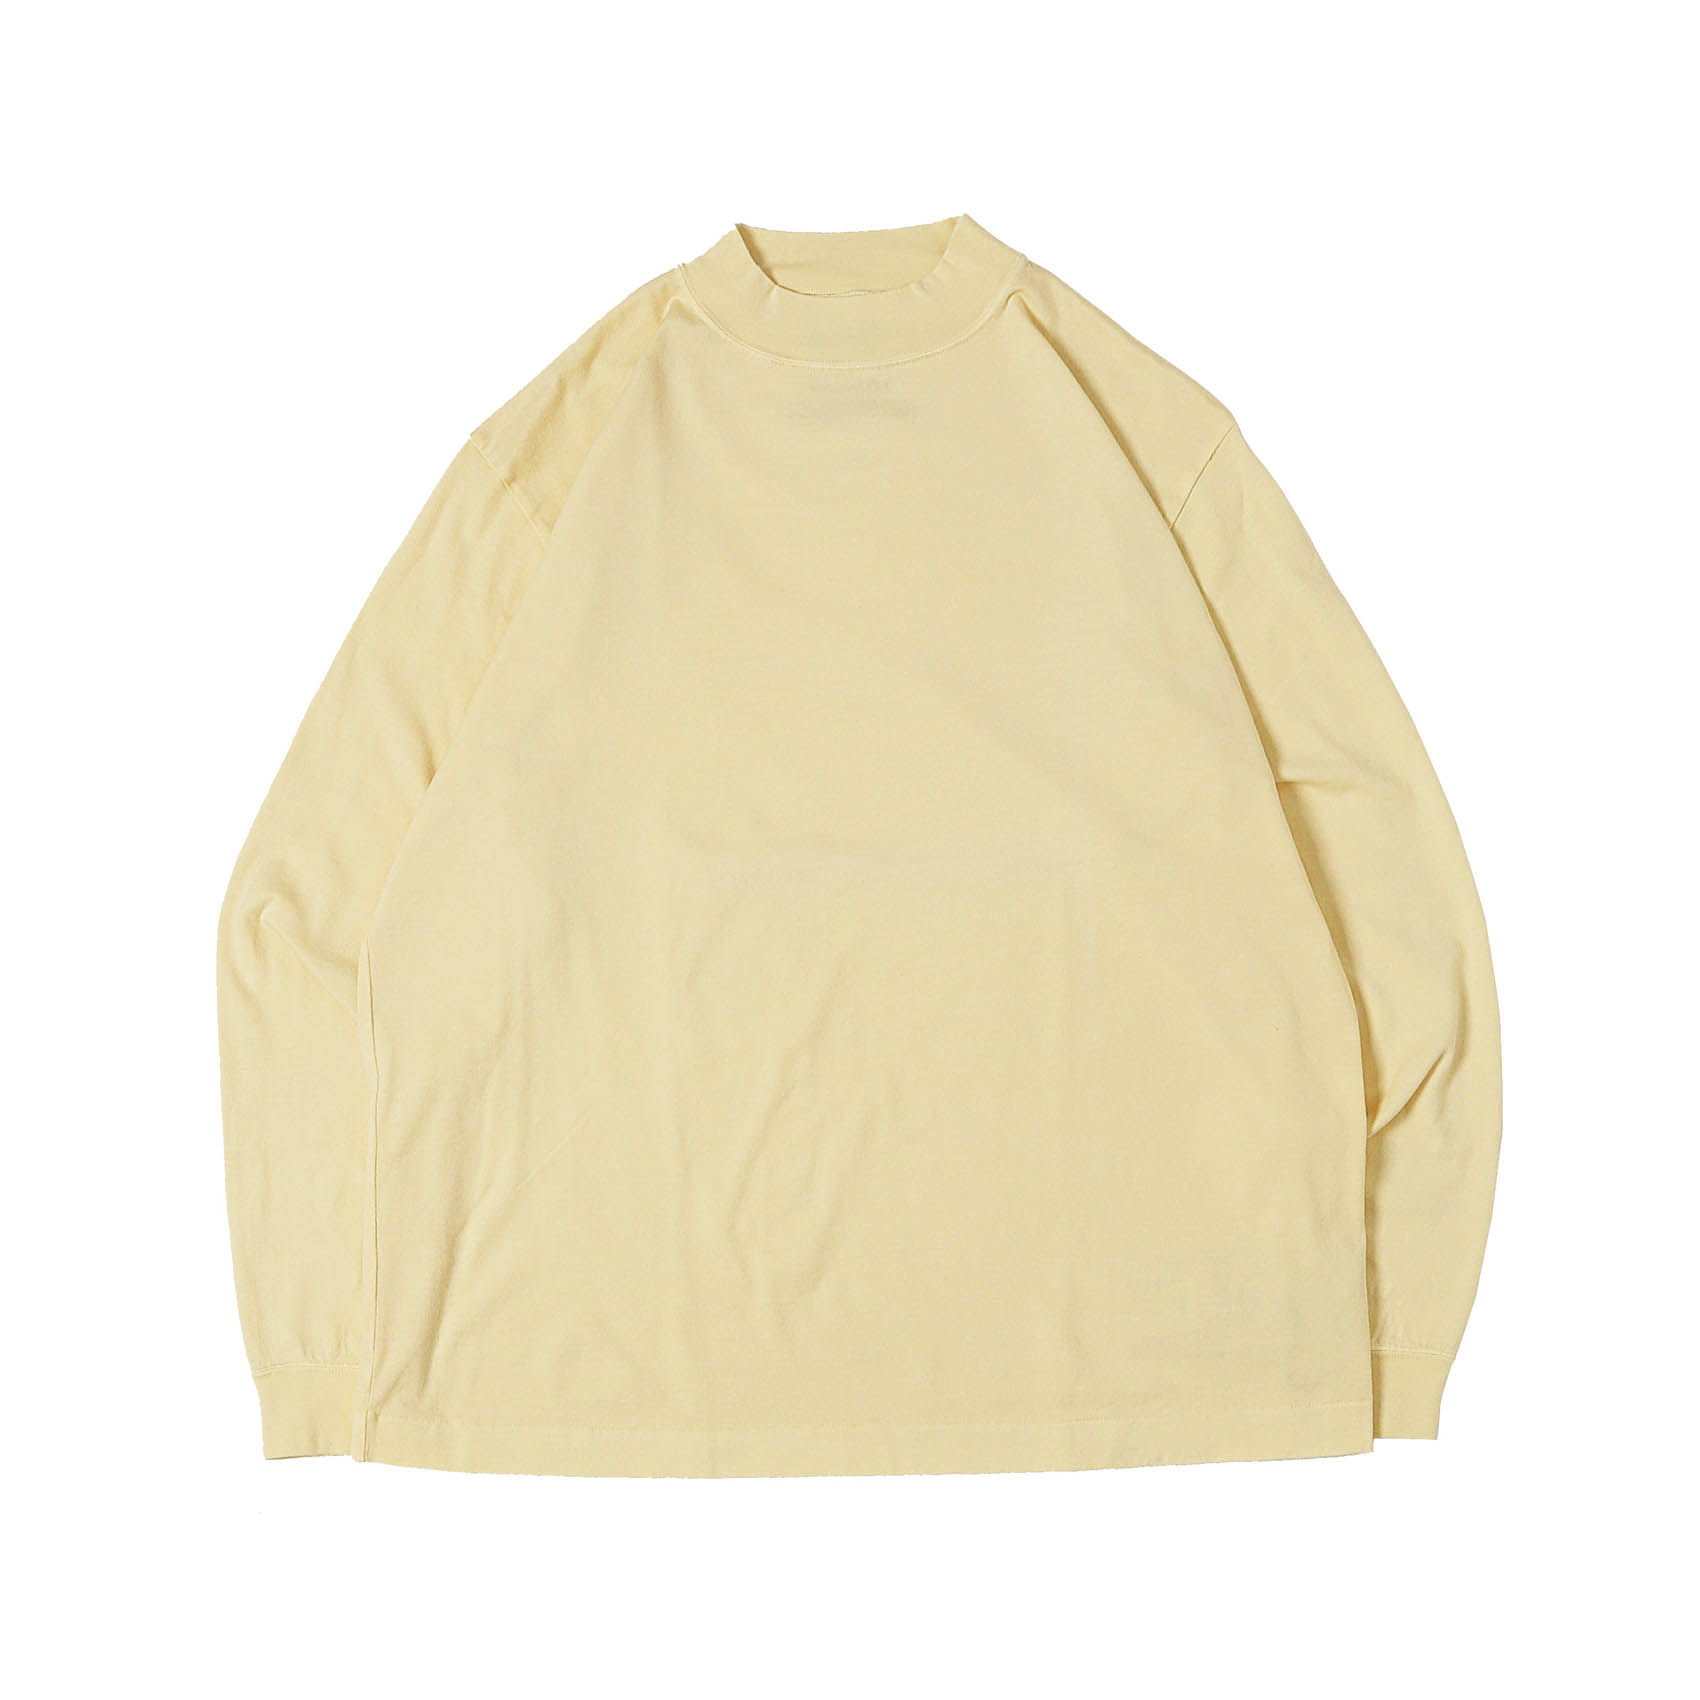 L/S MOCK NECK TEE - YELLOW